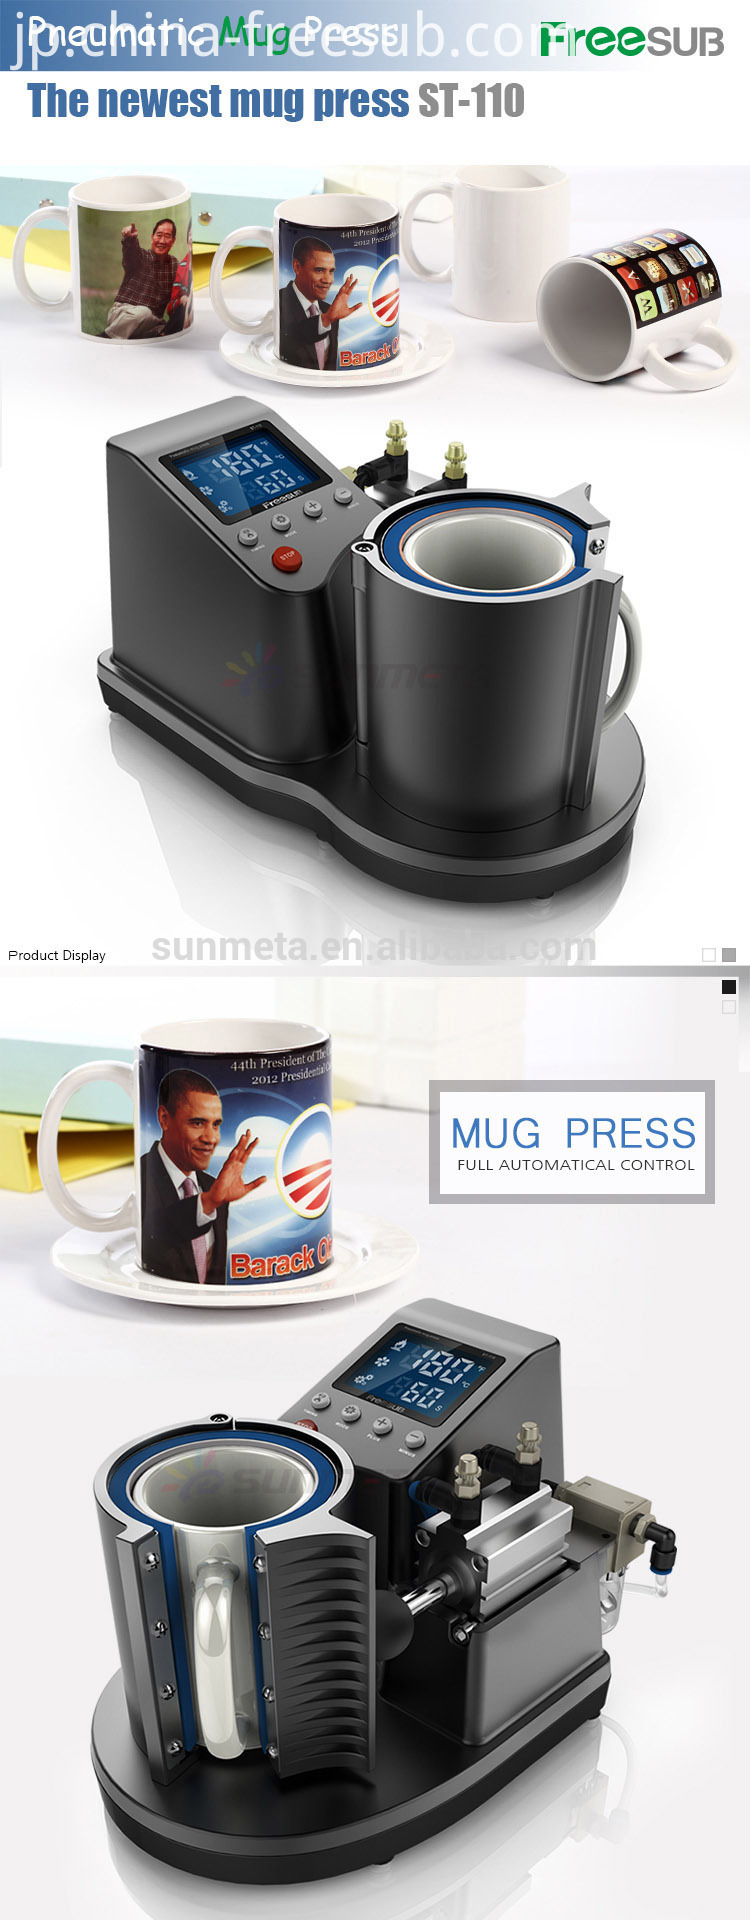 FREESUB Sublimation Printing Machine Make Your Own Mug